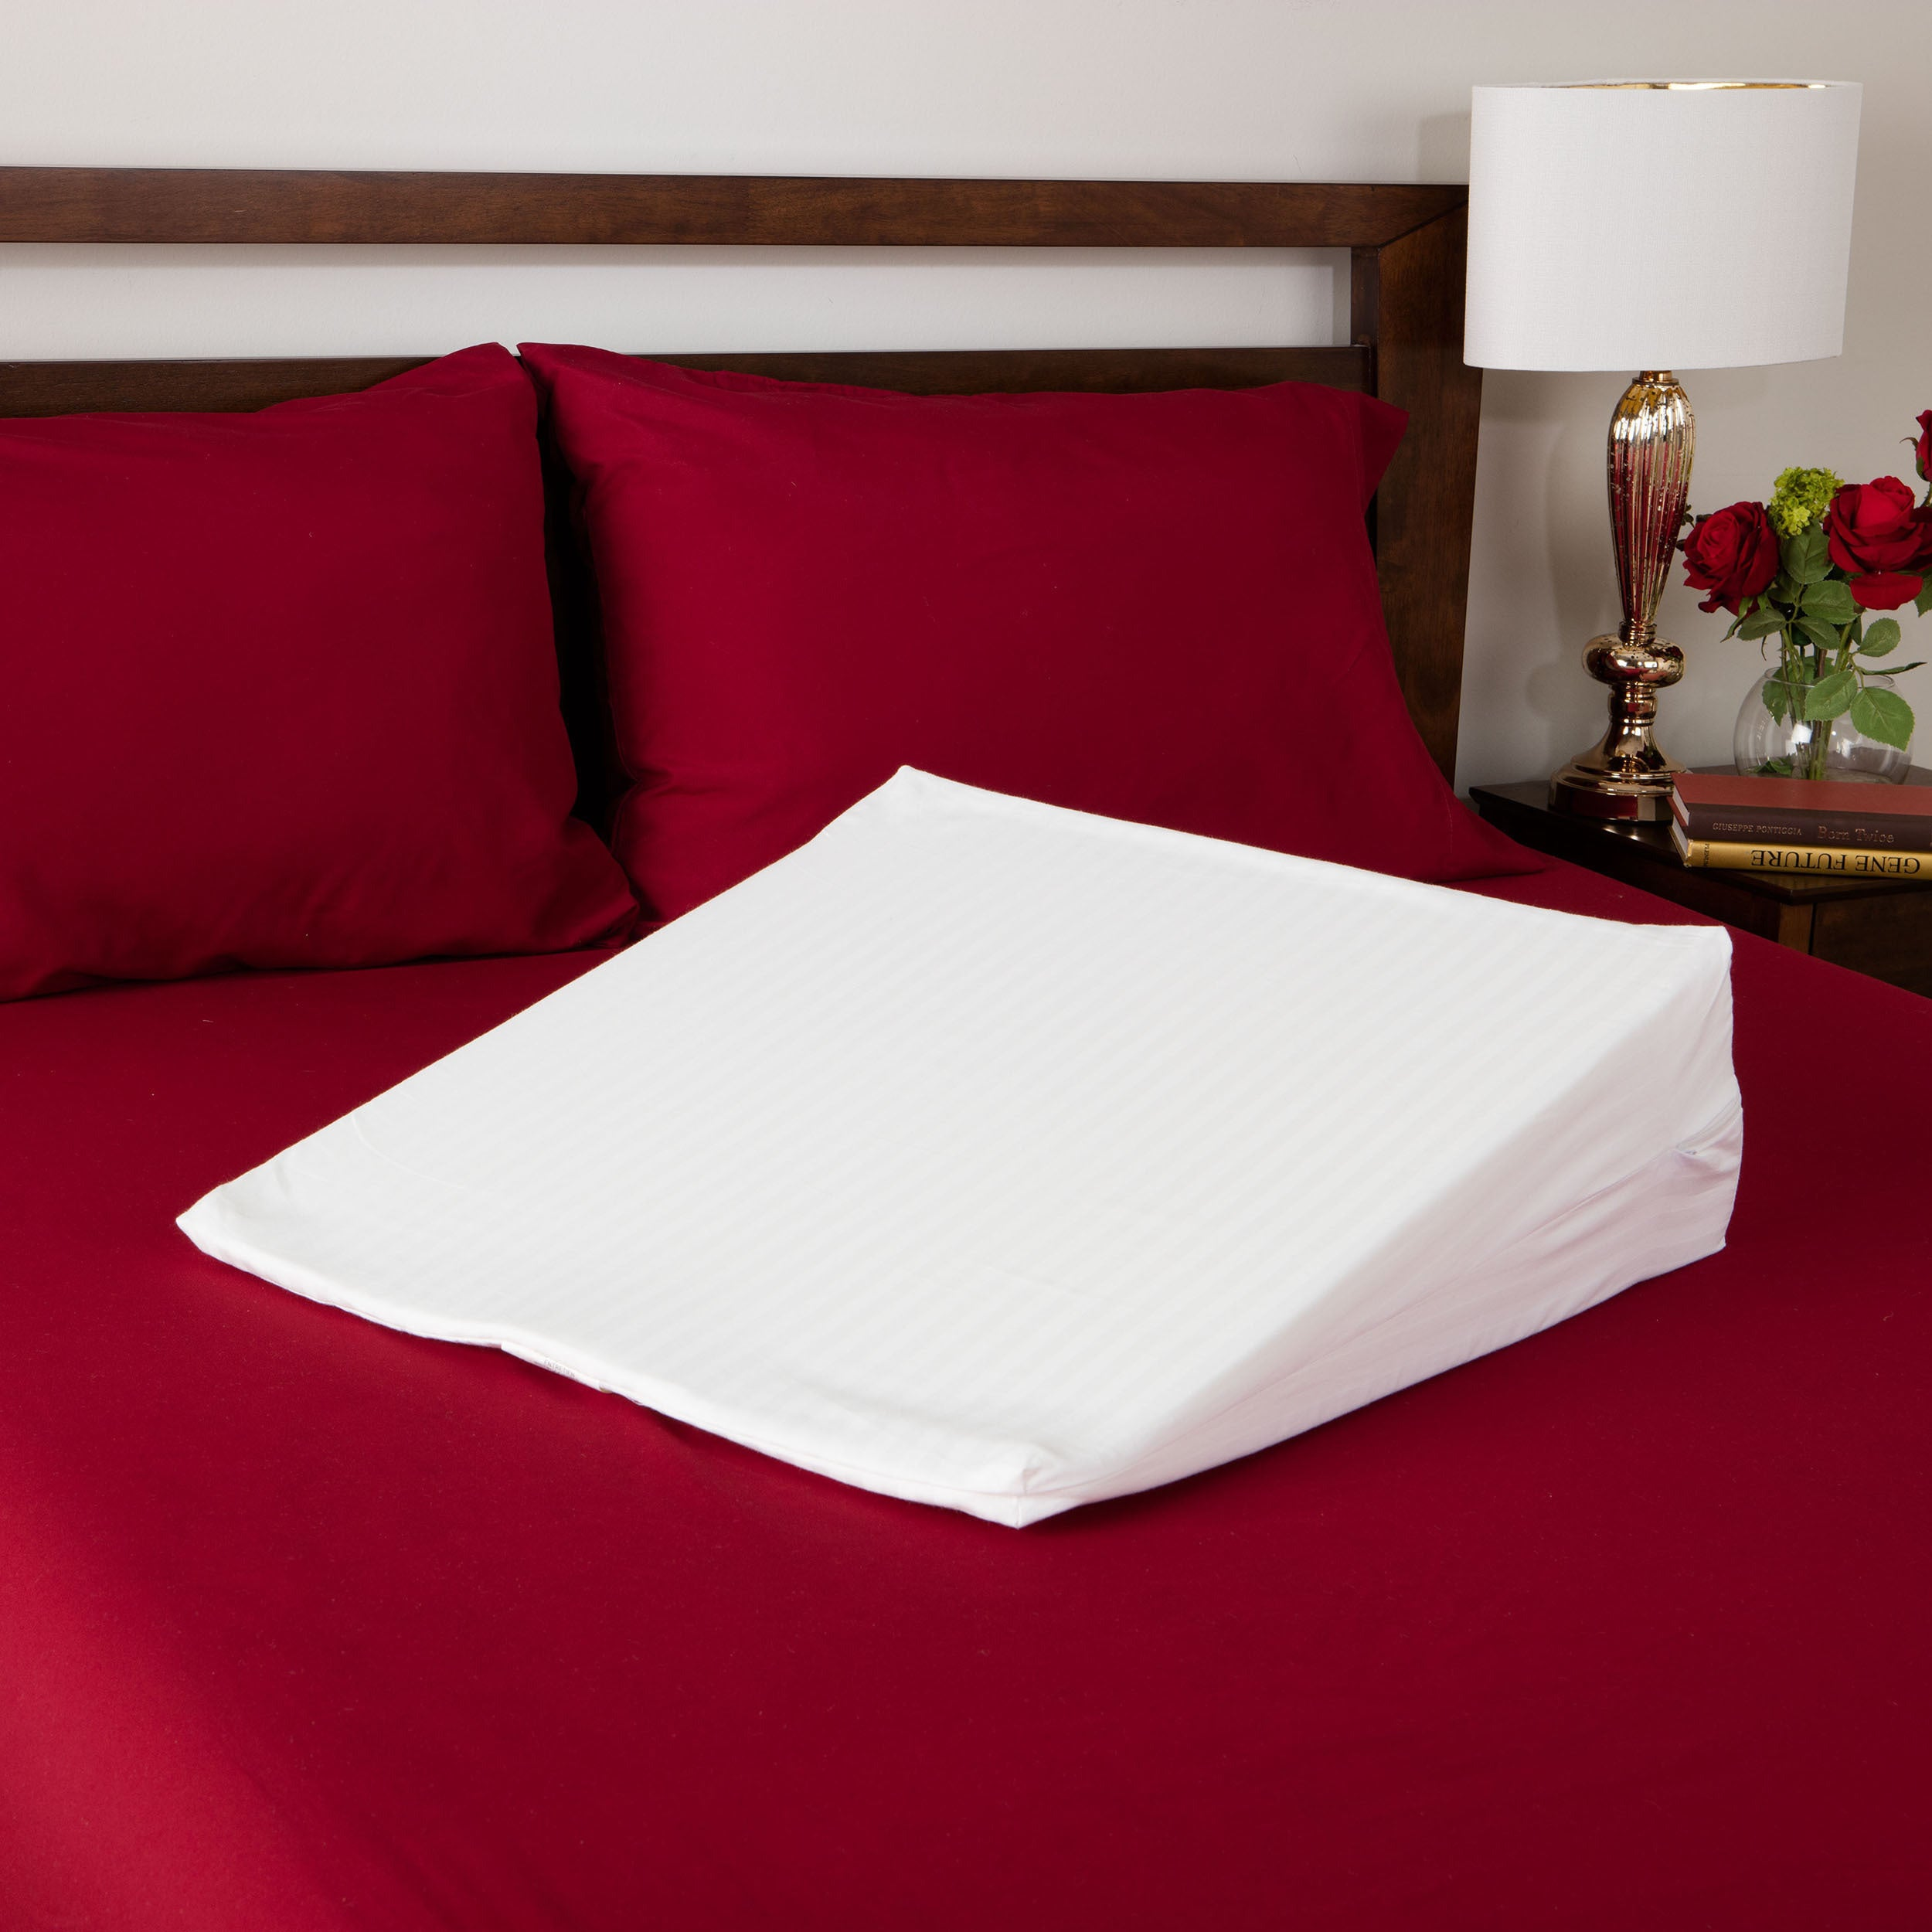 Shop splendorest visco elastic memory foam extra firm support bed wedge pillow on sale free shipping today overstock com 5901993